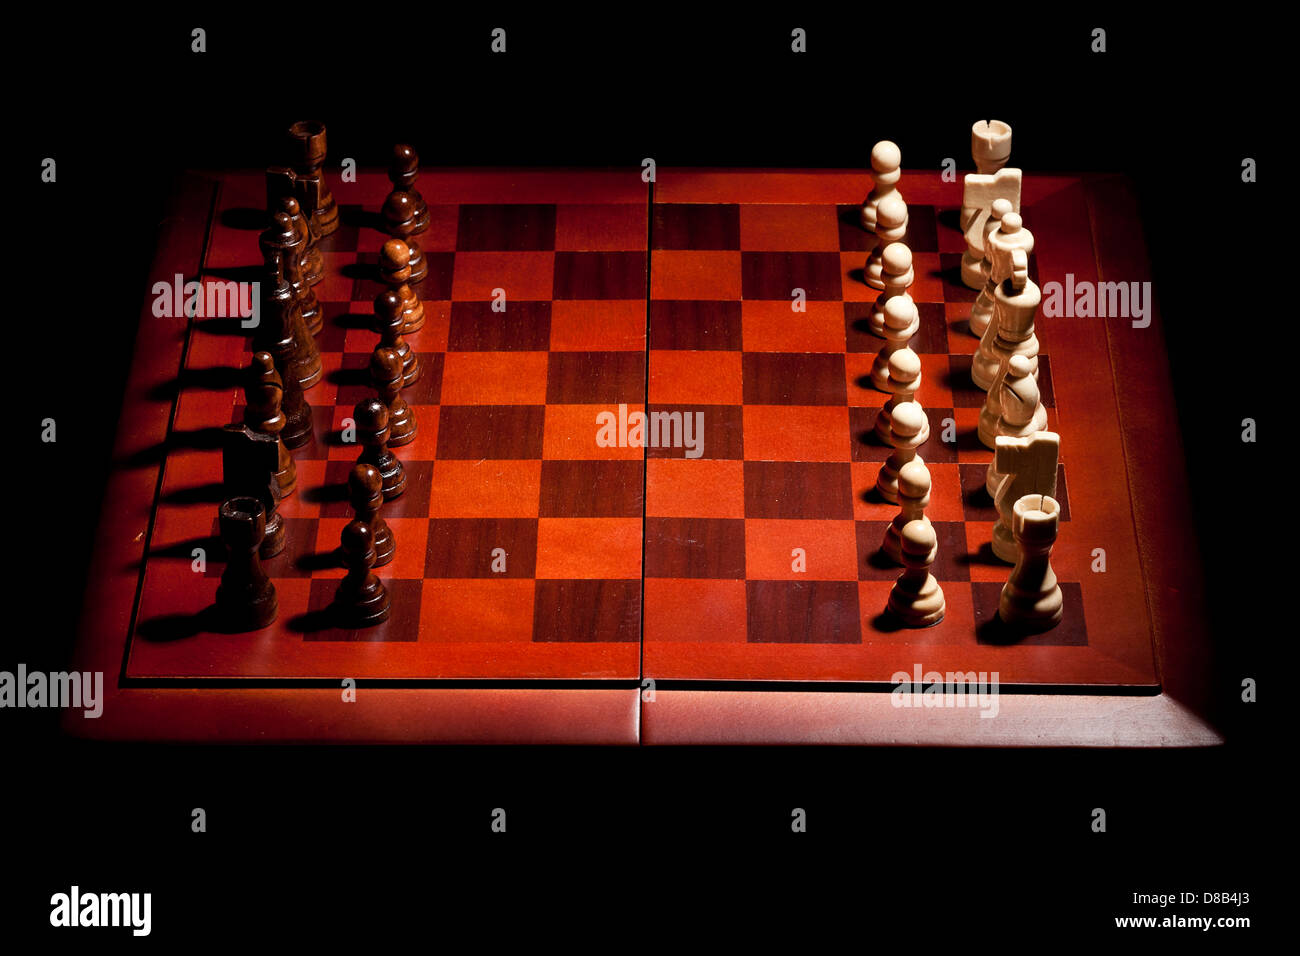 Classic Wooden Chessboard with Chess Pieces against a background - Stock Image